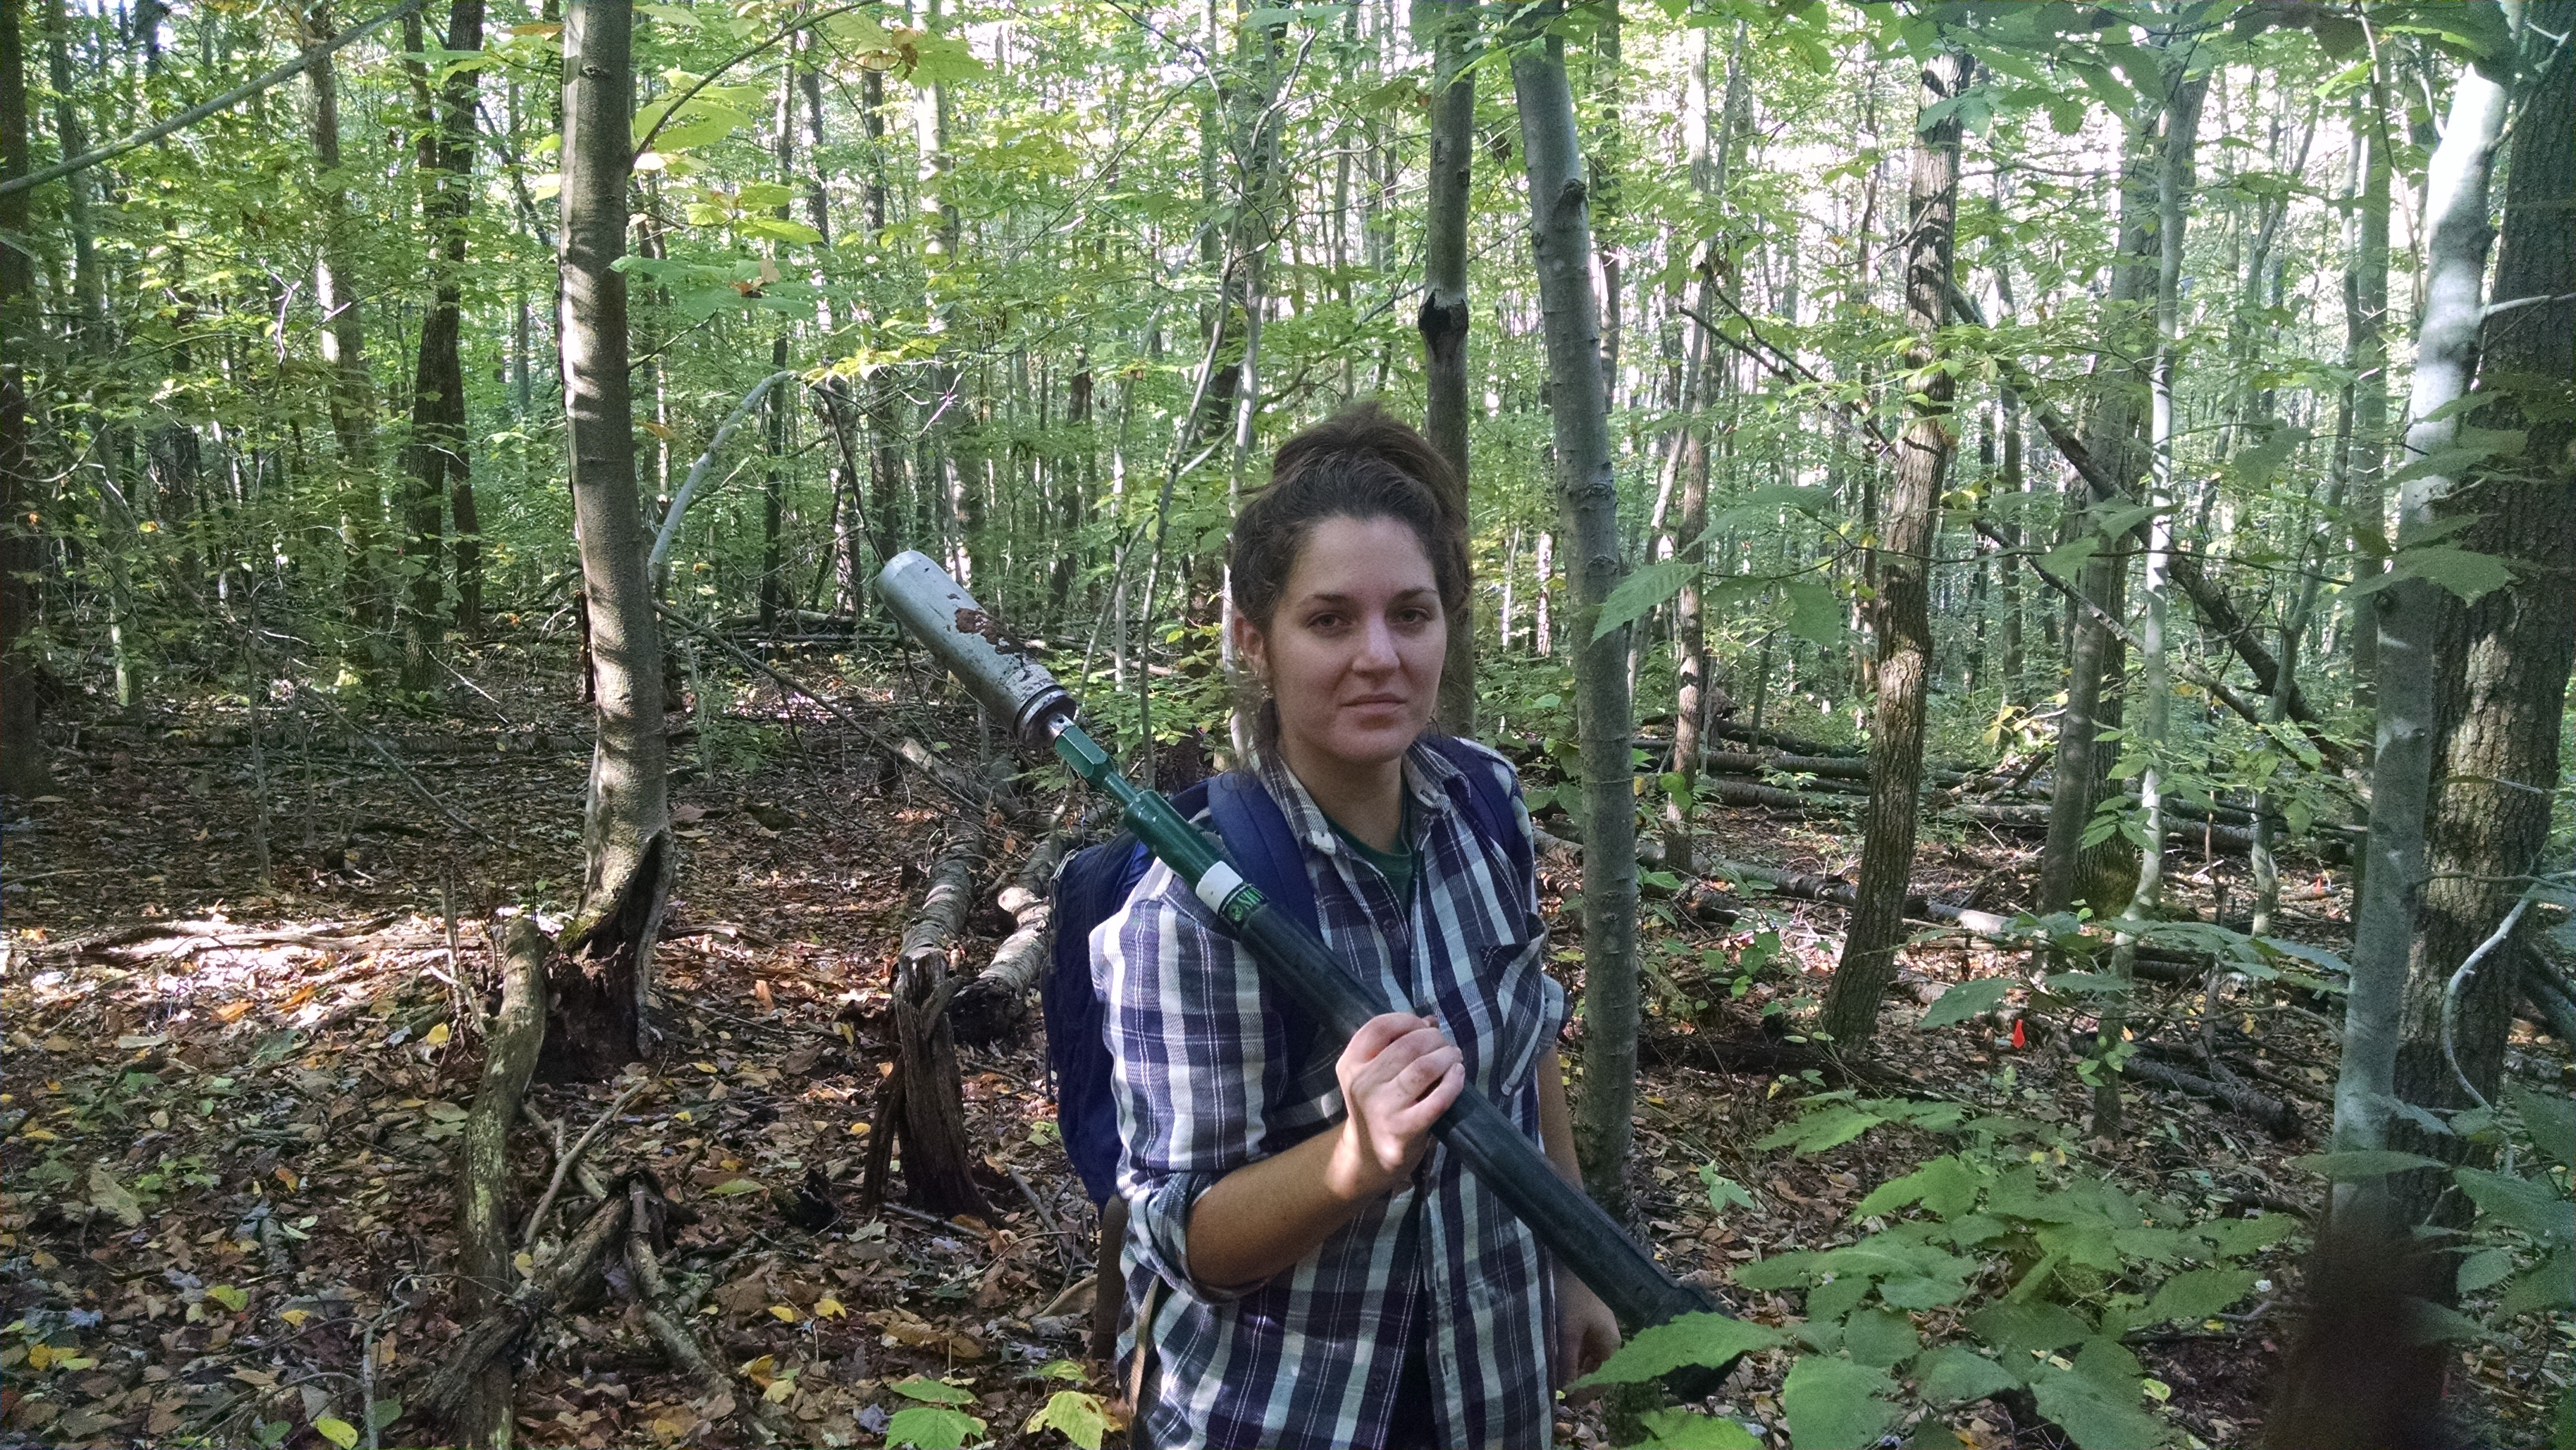 A West Virginia University graduate student is investigating how soils store carbon in ecosystems around the world to understand the impact of climate change.